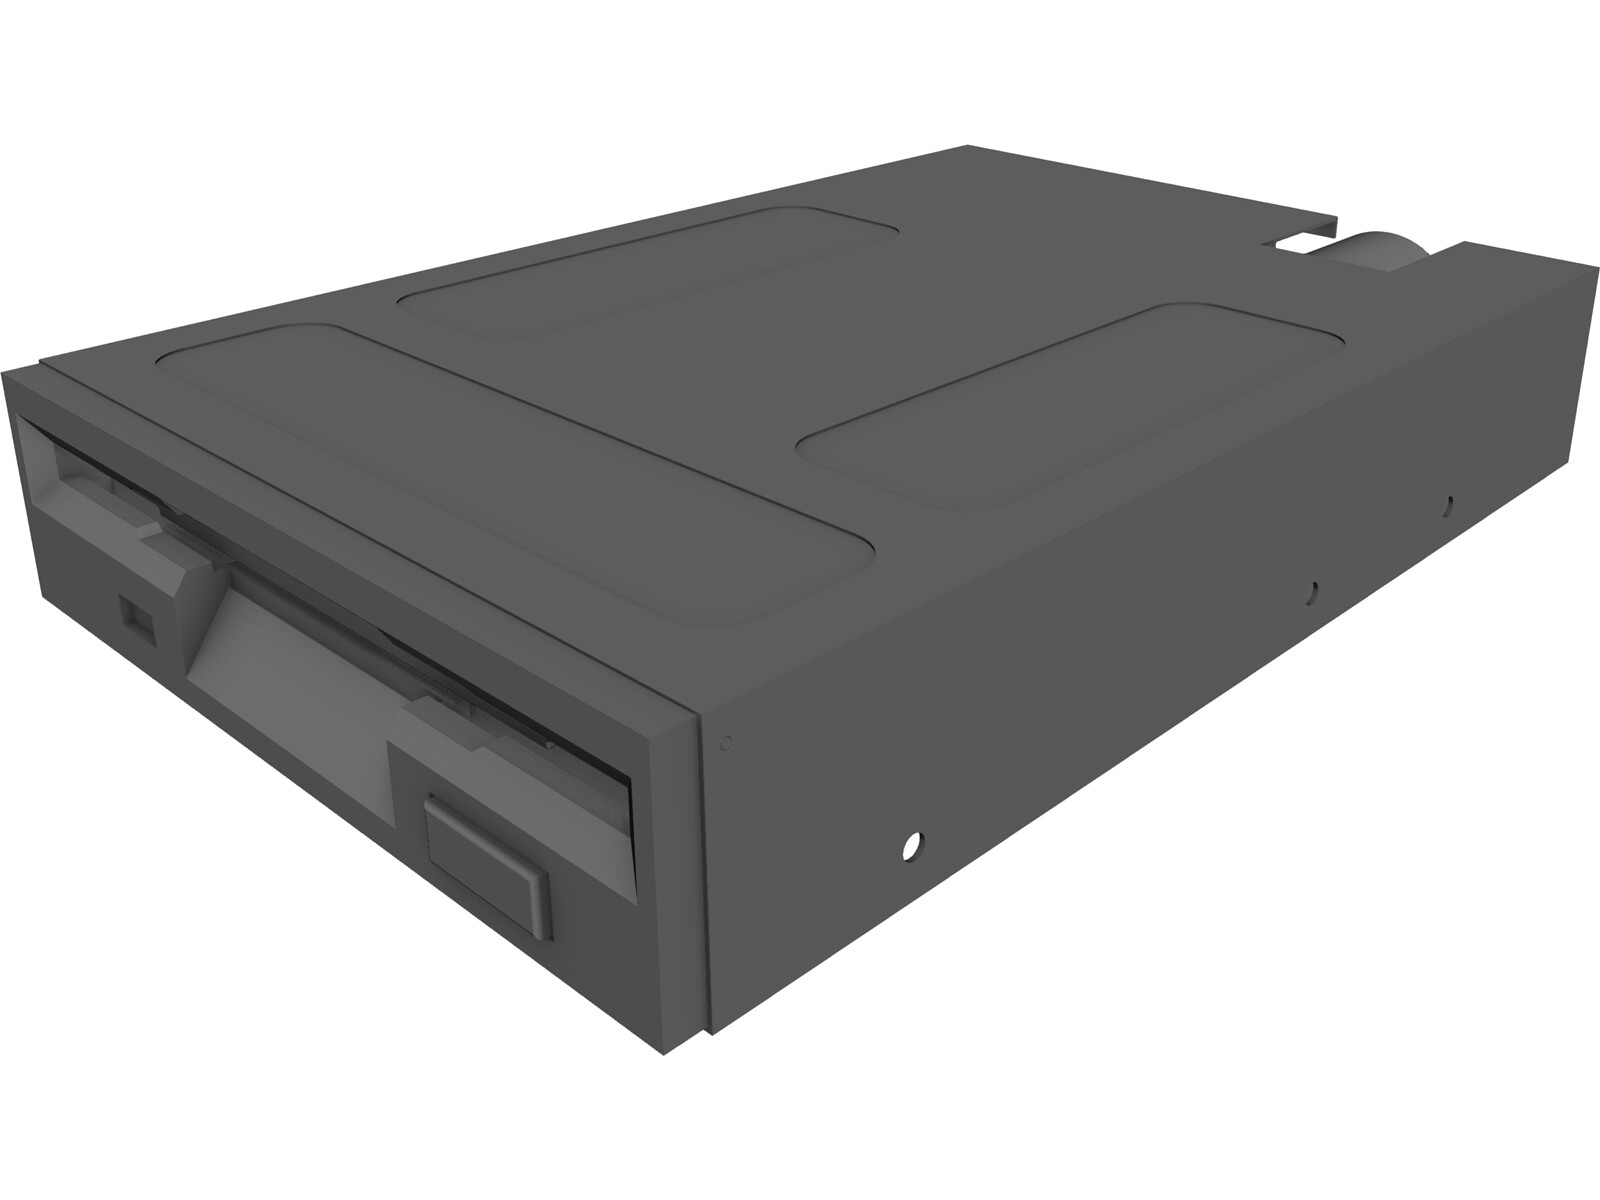 PC Floppy Disk Drive 3D CAD Model